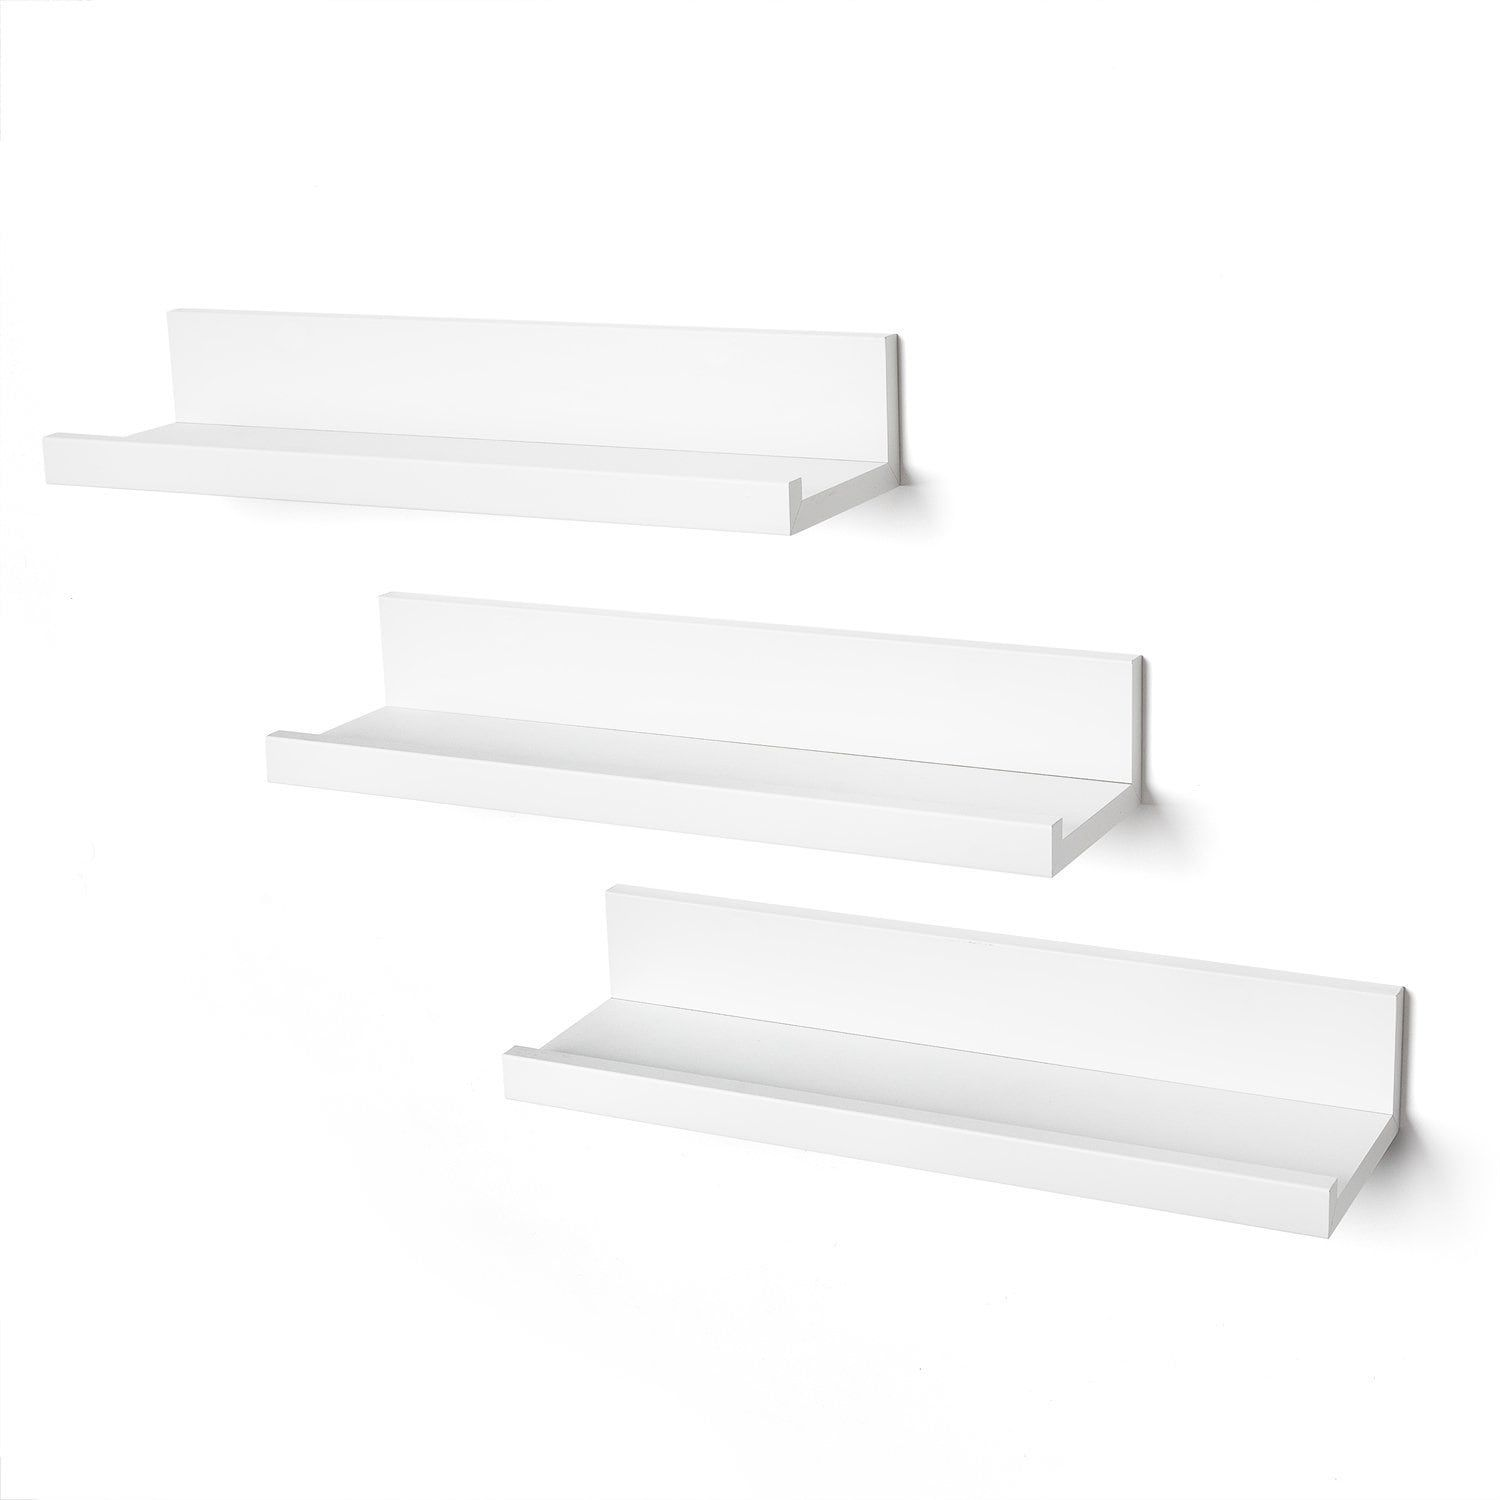 Overstock Com Online Shopping Bedding Furniture Electronics Jewelry Clothing More In 2020 Floating Wall Shelves Floating Wall Shelves White Wall Shelves